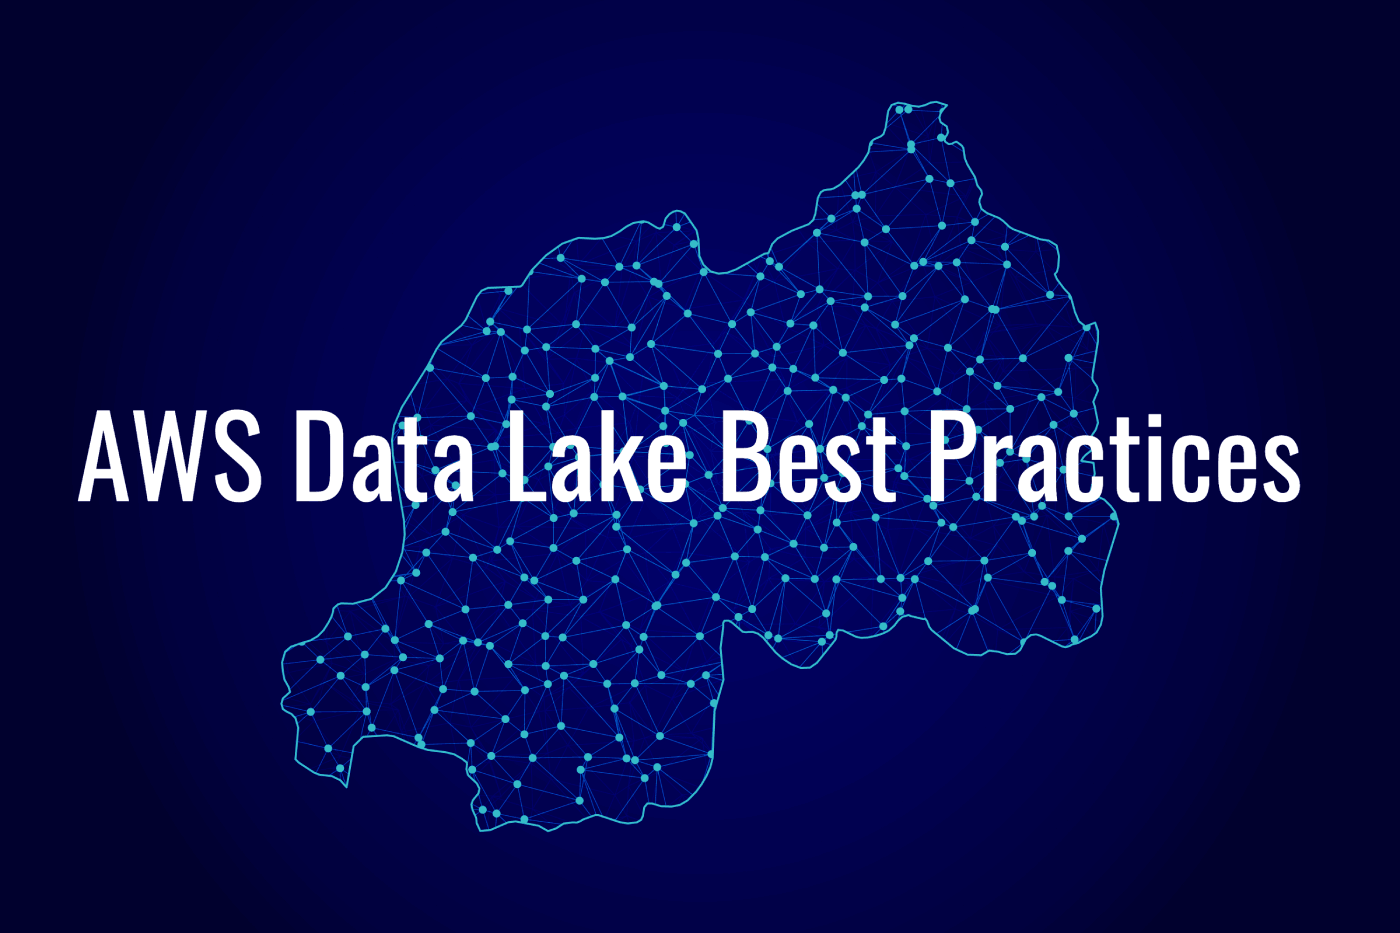 10 AWS Data Lake Best Practices